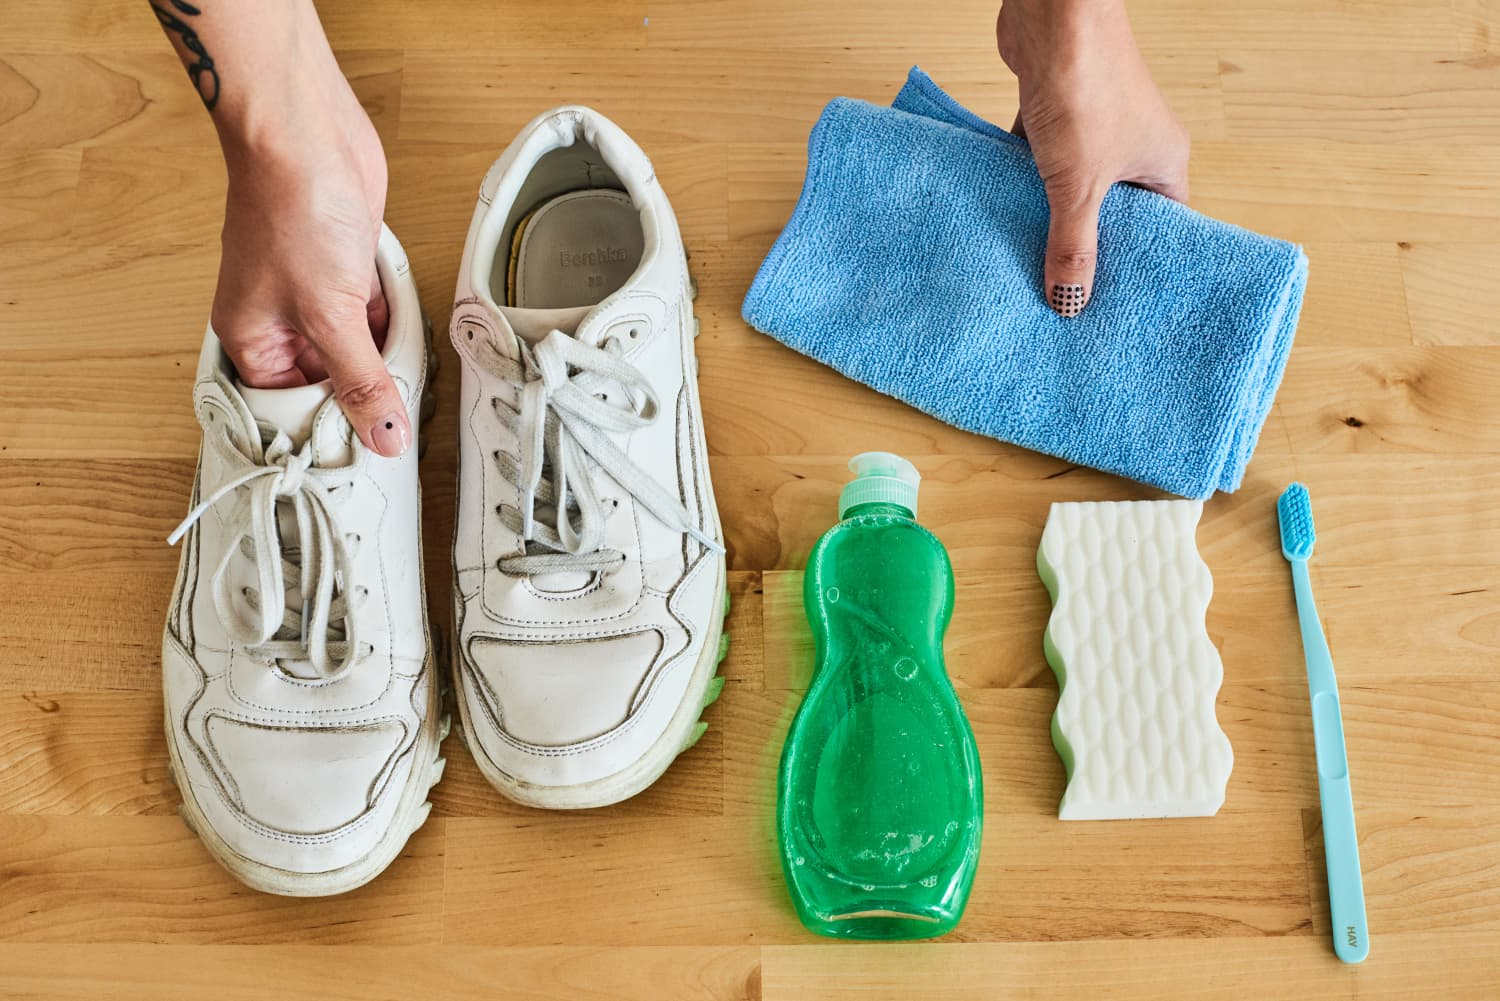 3 Easy Ways to Clean Your White Shoes So They Look Like New